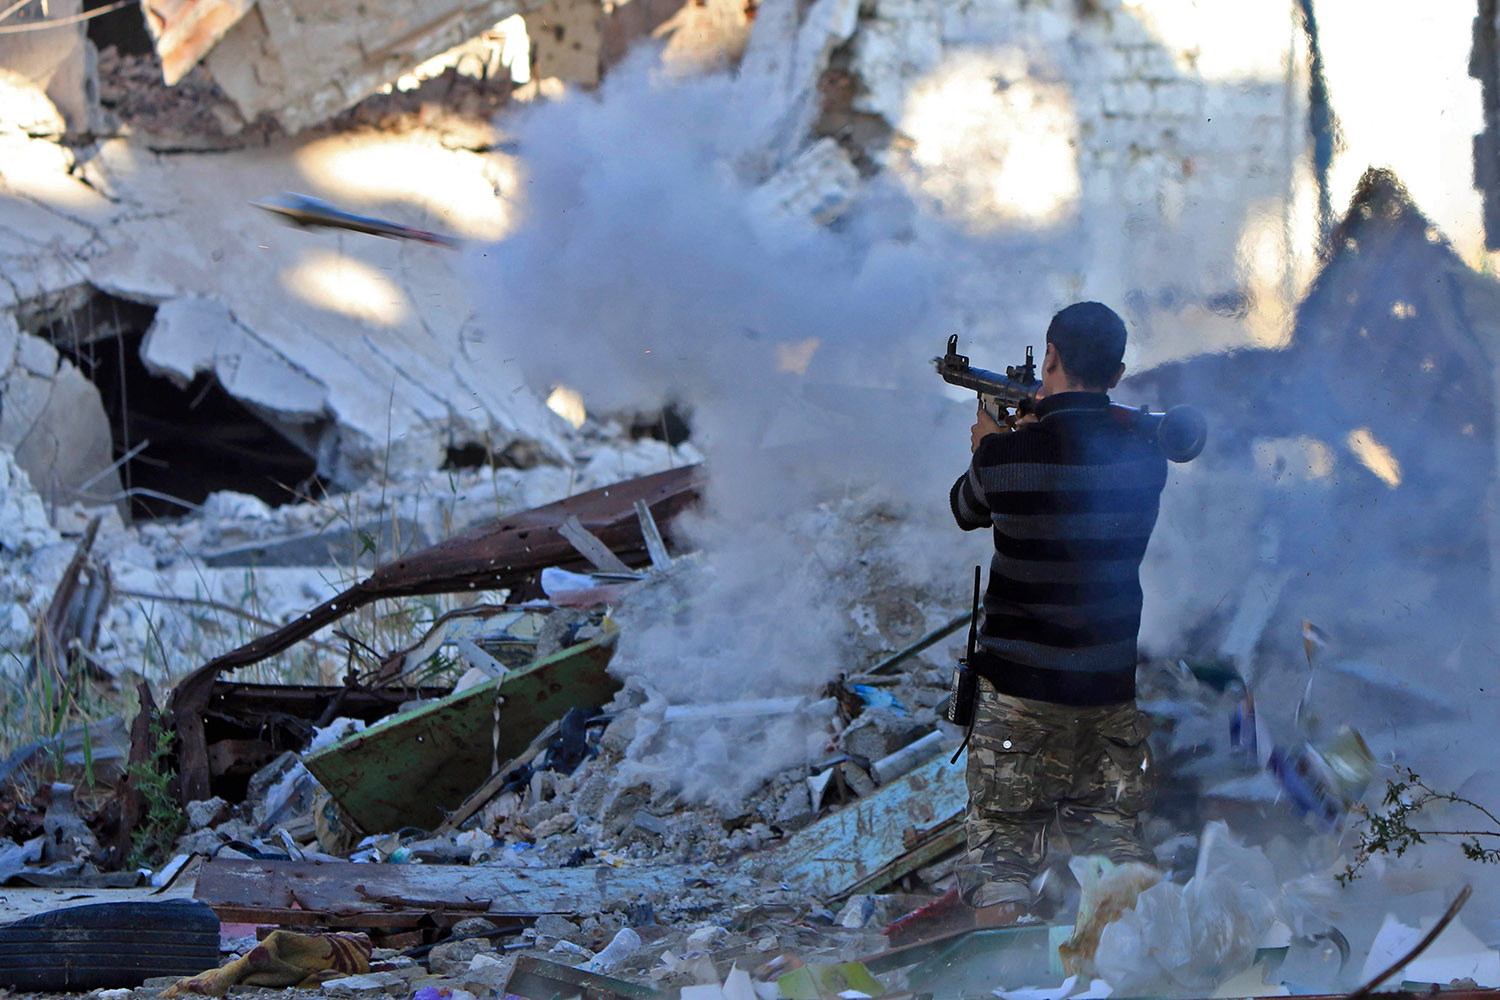 A member of the self-styled Libyan National Army, loyal to the country's east strongman Khalifa Haftar, fires a rocket propelled grenade (RPG) during clashes with militants in Benghazi's central Akhribish district on Nov. 9. Abdullah Doma /AFP/Getty Images